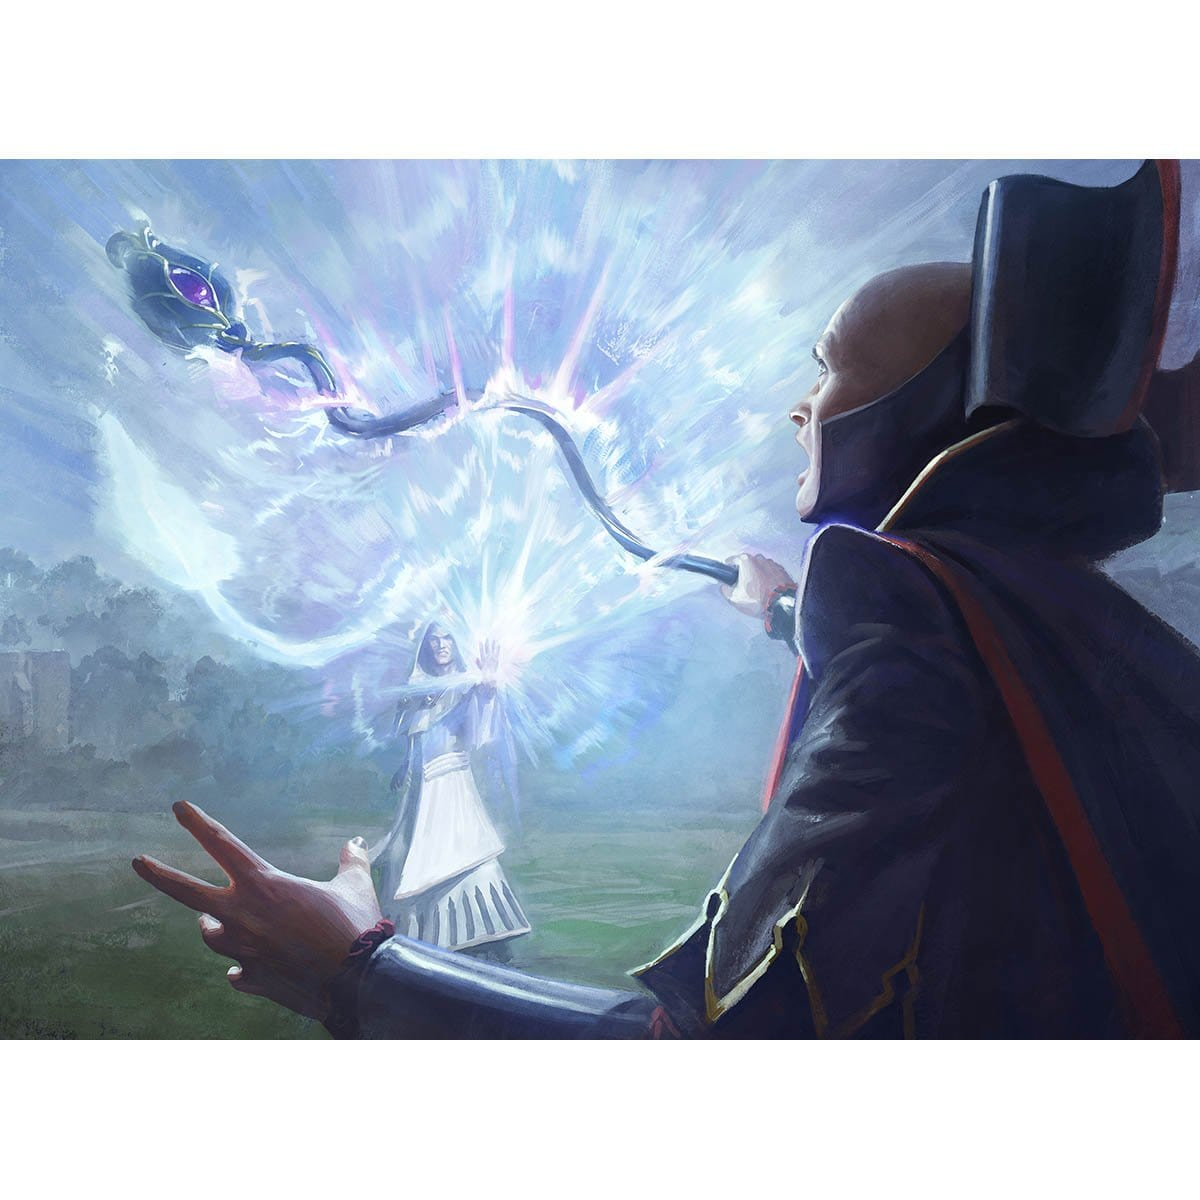 Ray of Distortion Print - Print - Original Magic Art - Accessories for Magic the Gathering and other card games